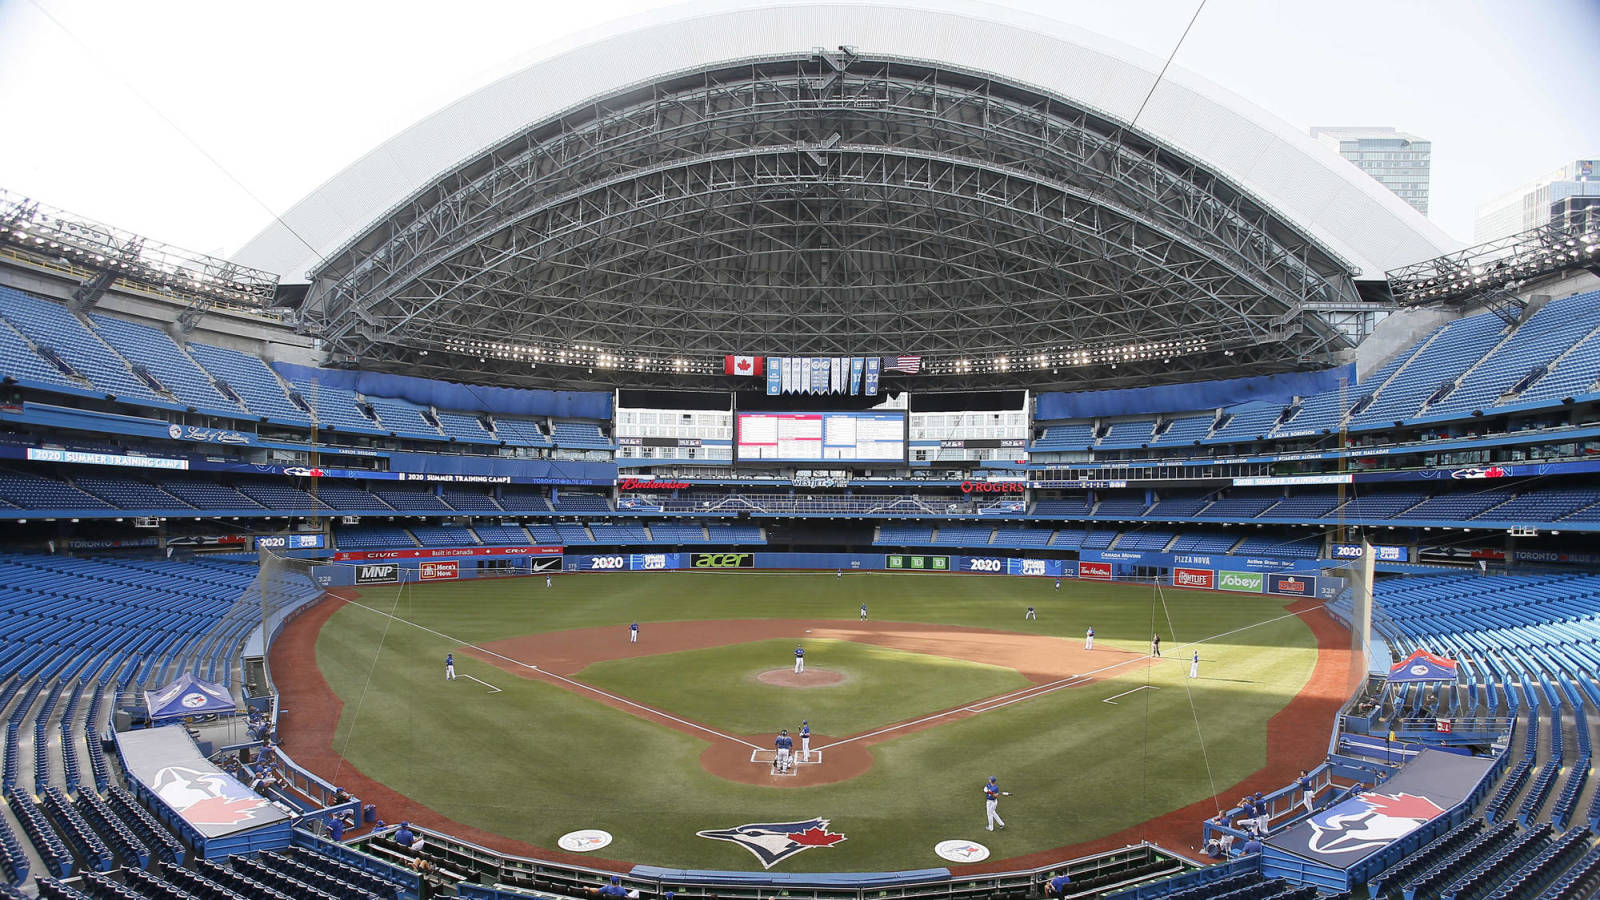 The Blue Jays allowed 15,000 fans to return to Toronto